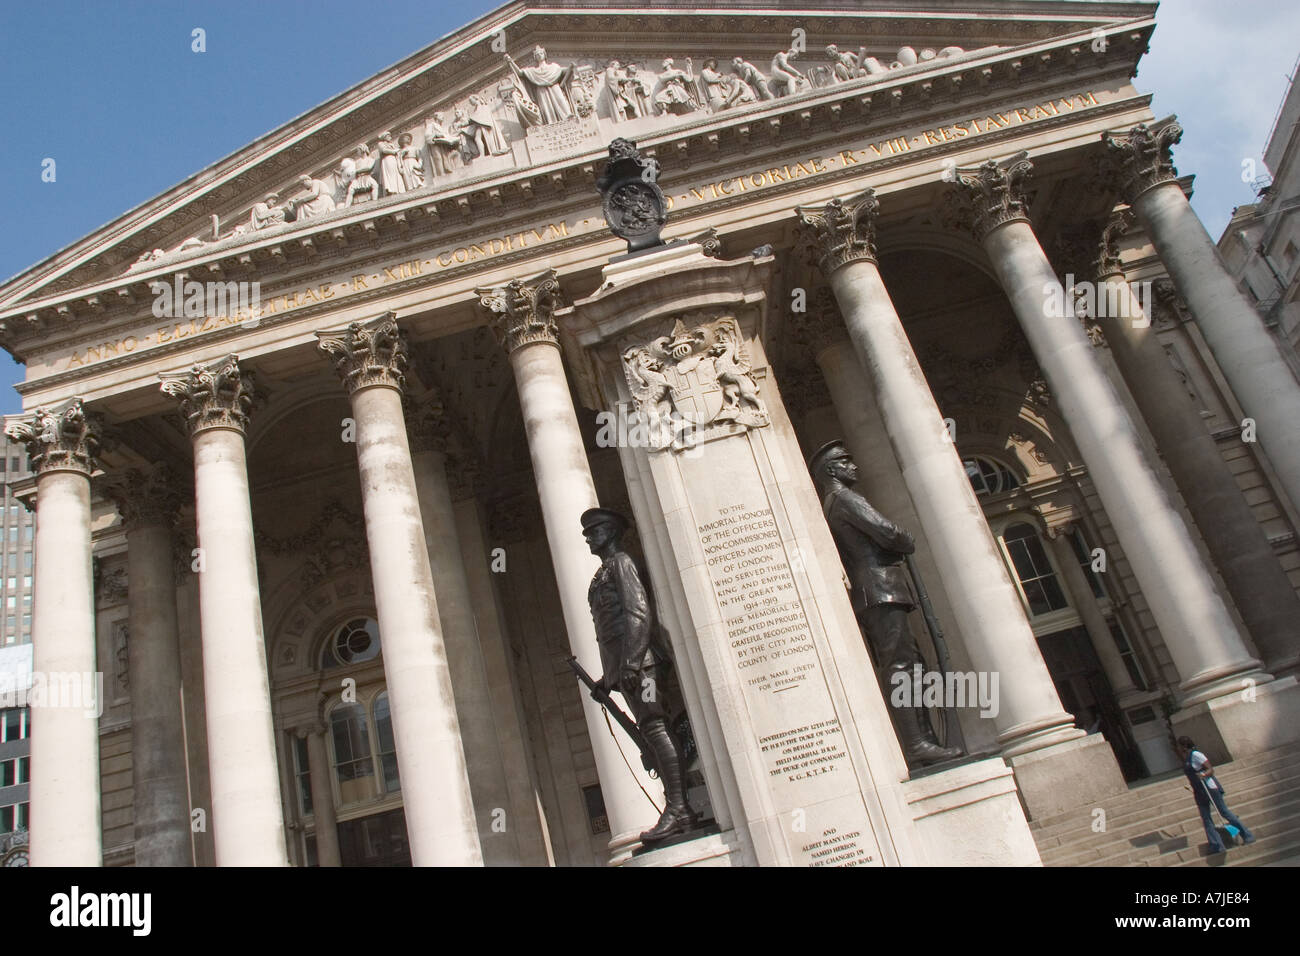 'Royal Exchange' near the Mansion House City of London GB UK - Stock Image